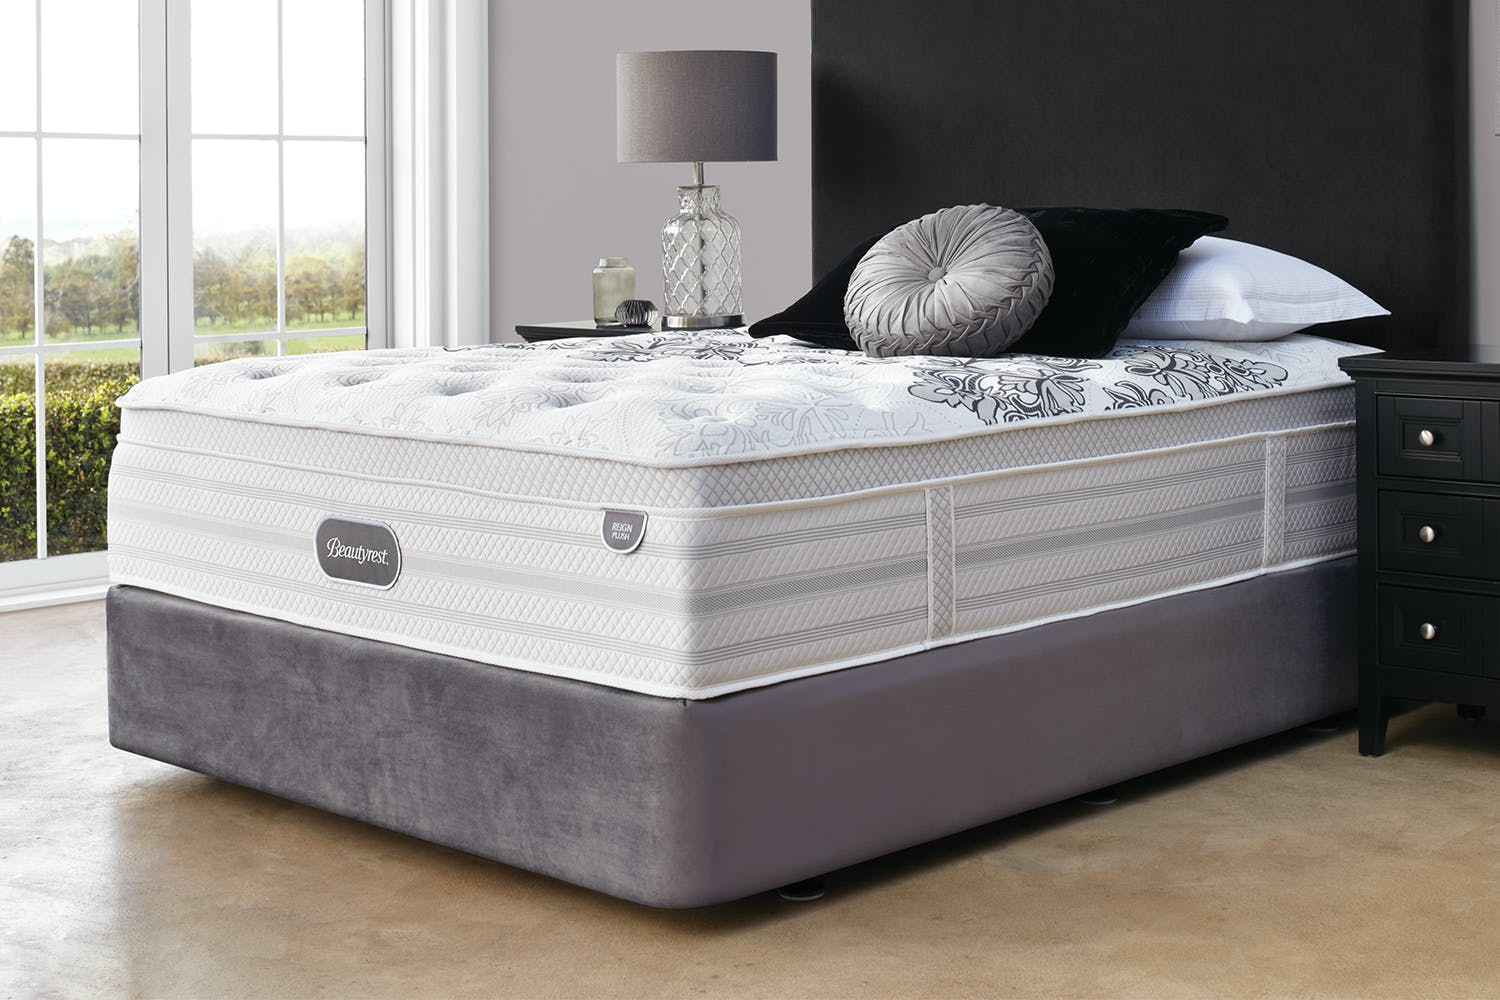 Image of Reign Soft King Bed by Beautyrest